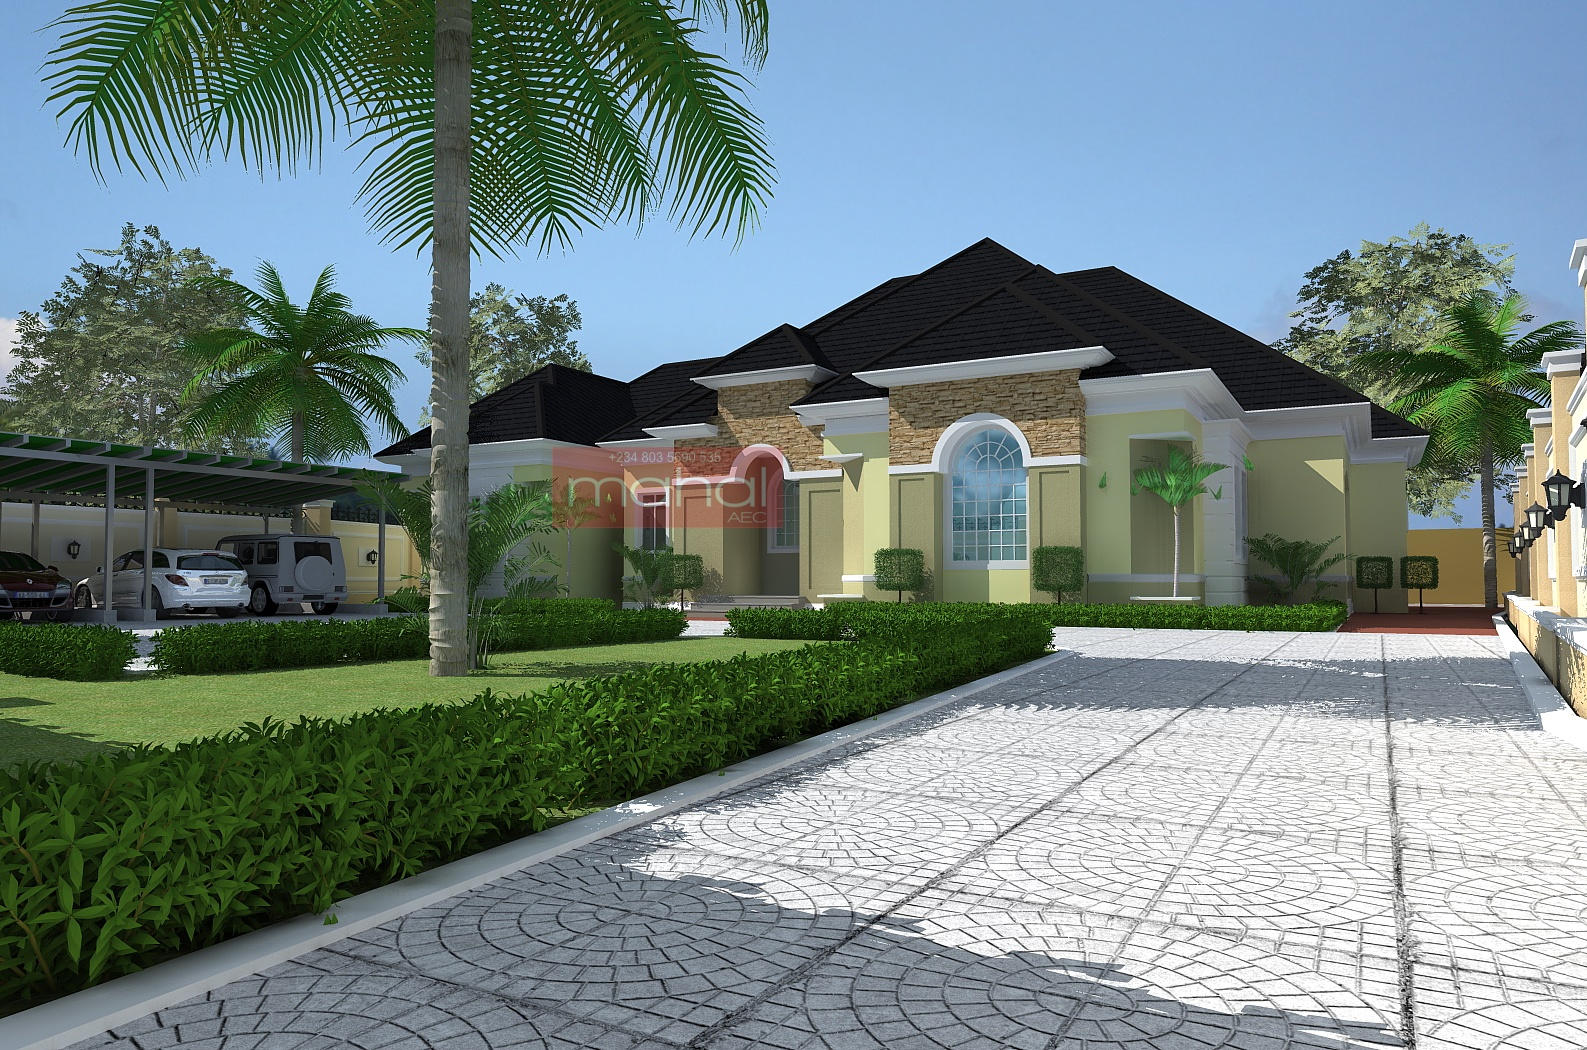 Residential Architecture Luxury 5 Bedroom Bungalow Ido